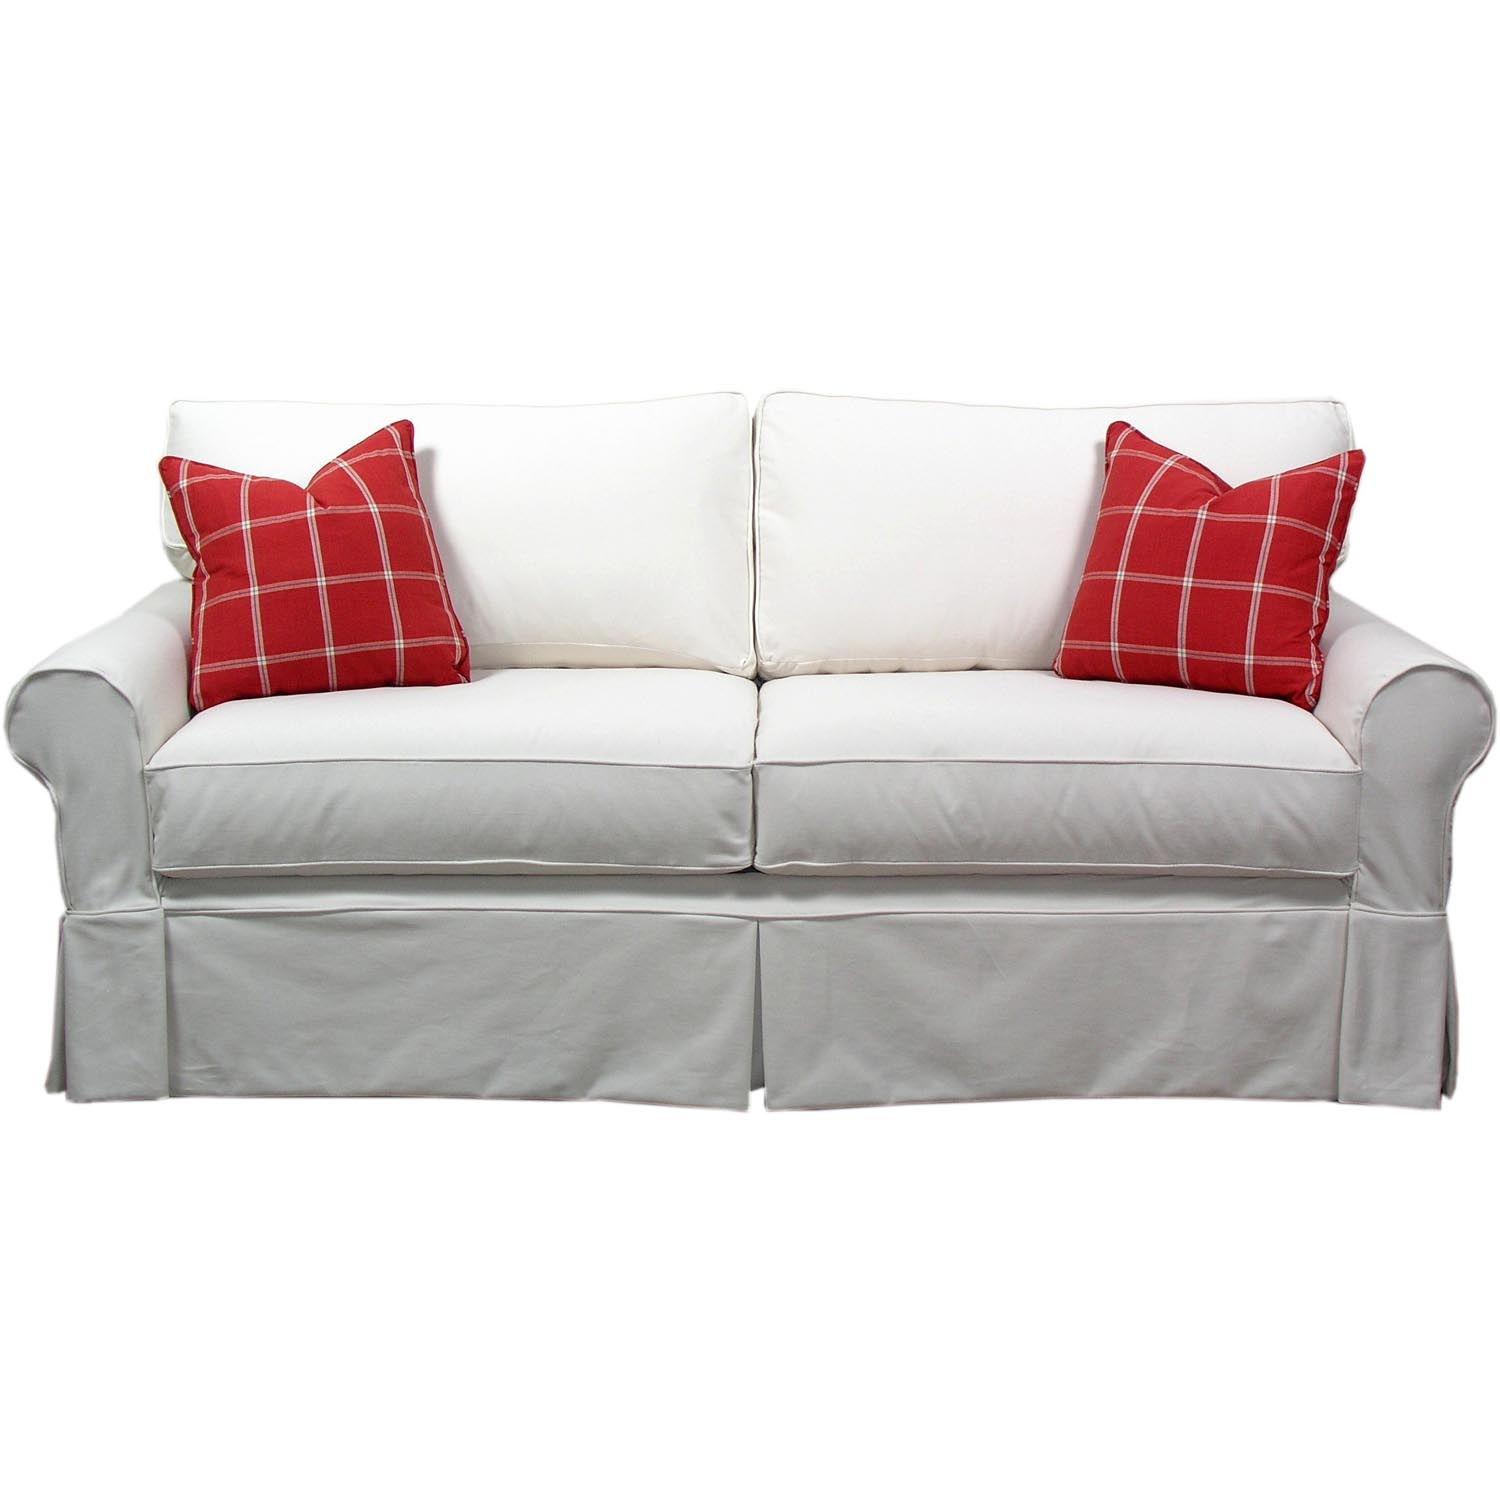 Alexandria Townhouse Sofa